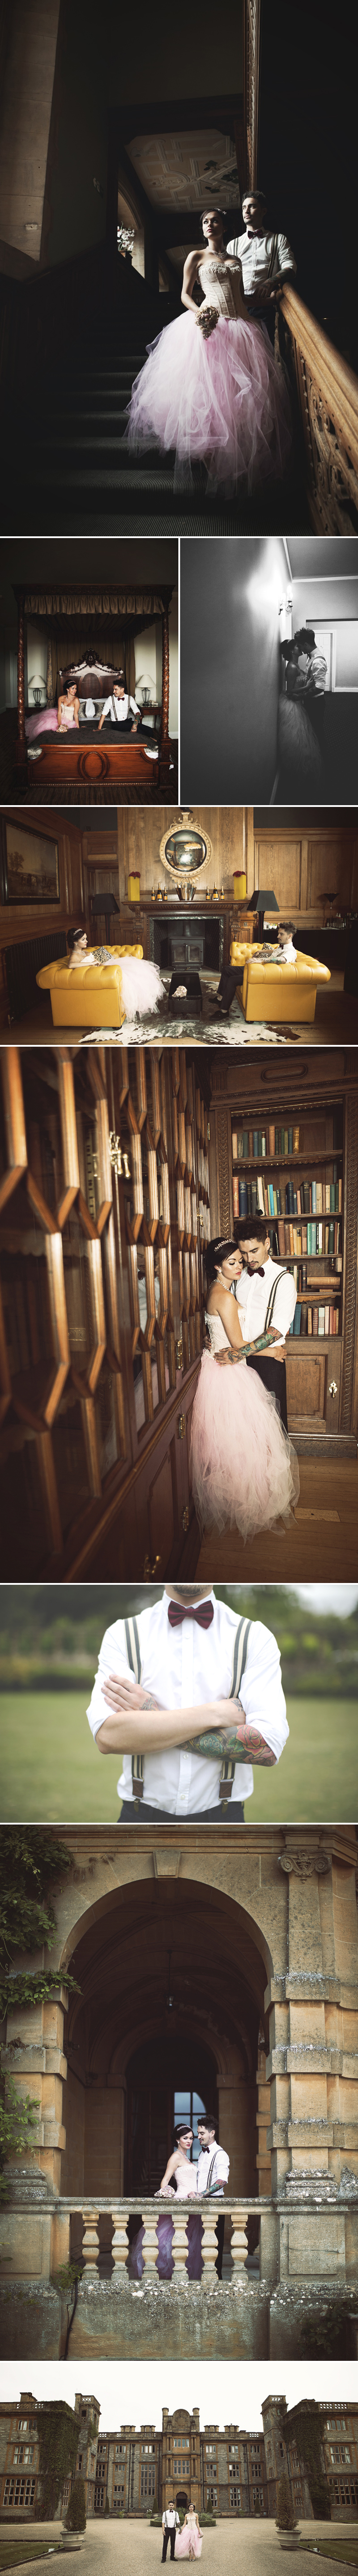 Coco Wedding Venues - Valentines Styled Shoot ft. Eynsham Hall - Images by Jen Marino.